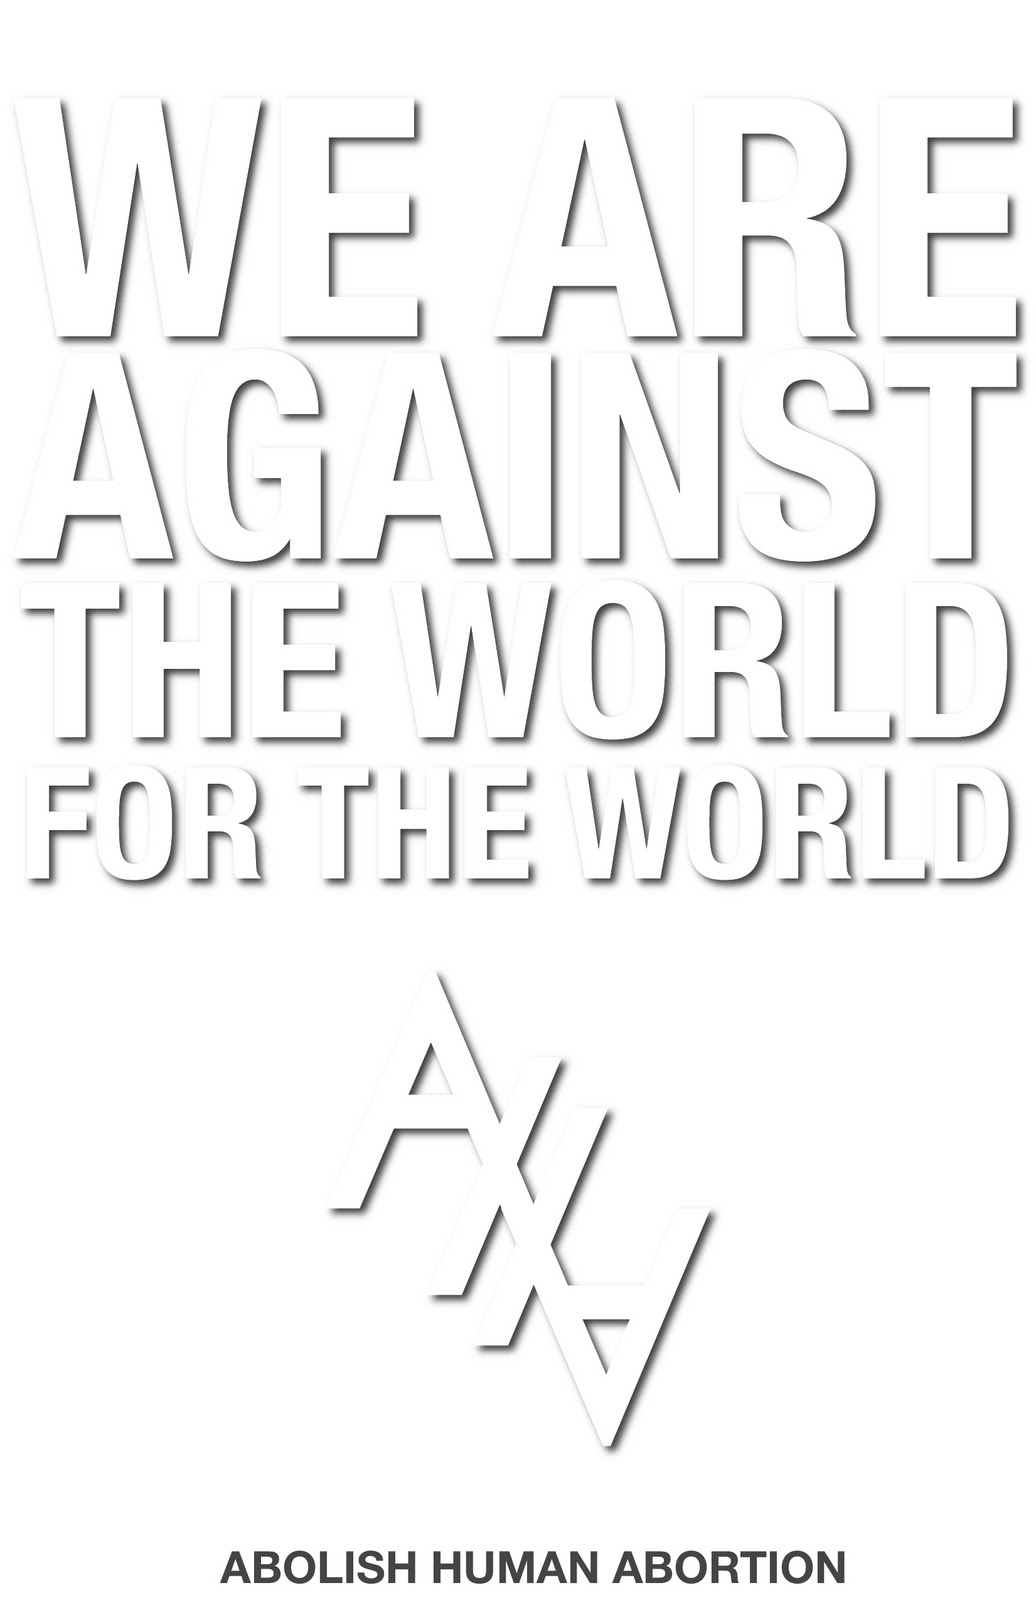 http://3.bp.blogspot.com/-RiZNx36dqd8/Tvf46Or_xBI/AAAAAAAABBk/Q95_QoJKvcw/s1600/Against+the+World+for+the+World+AHA.jpg